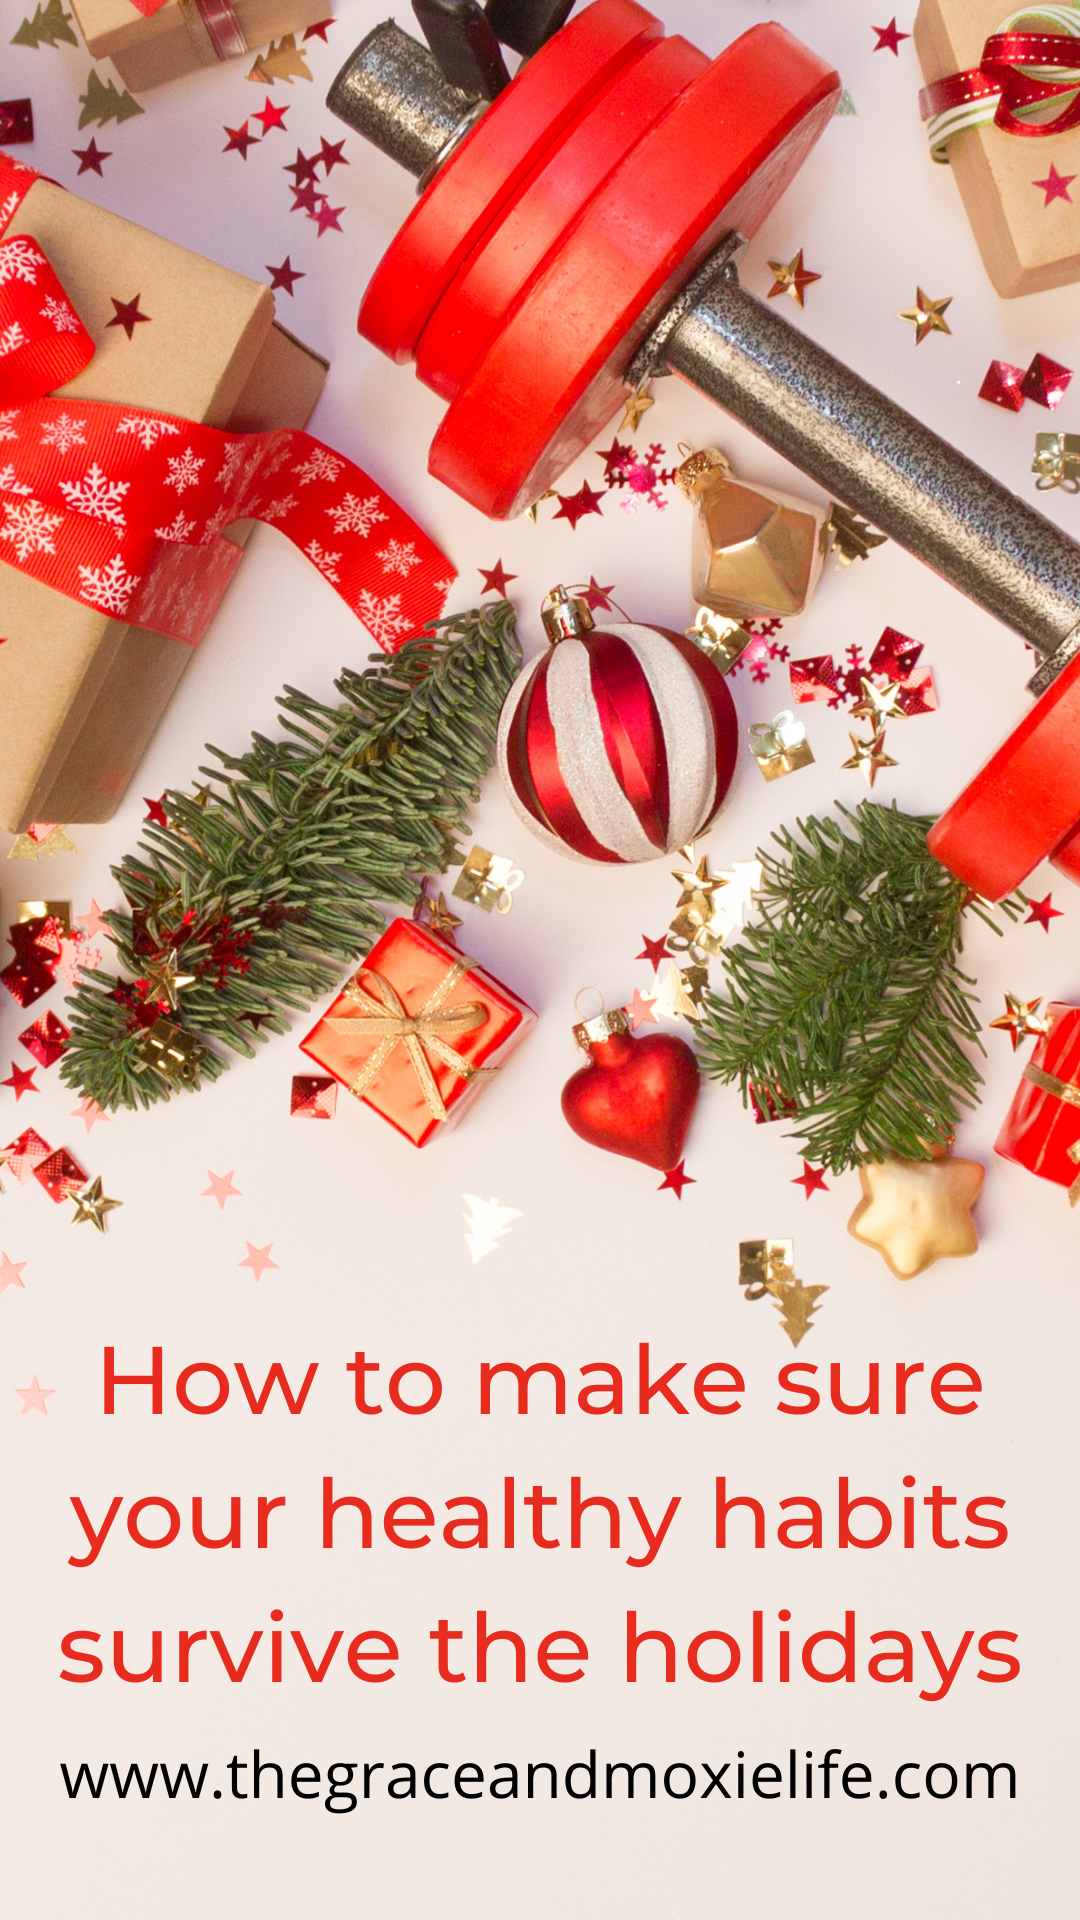 How to Make Sure Your Healthy Habits Survive the Holidays | The Grace and Moxie Life